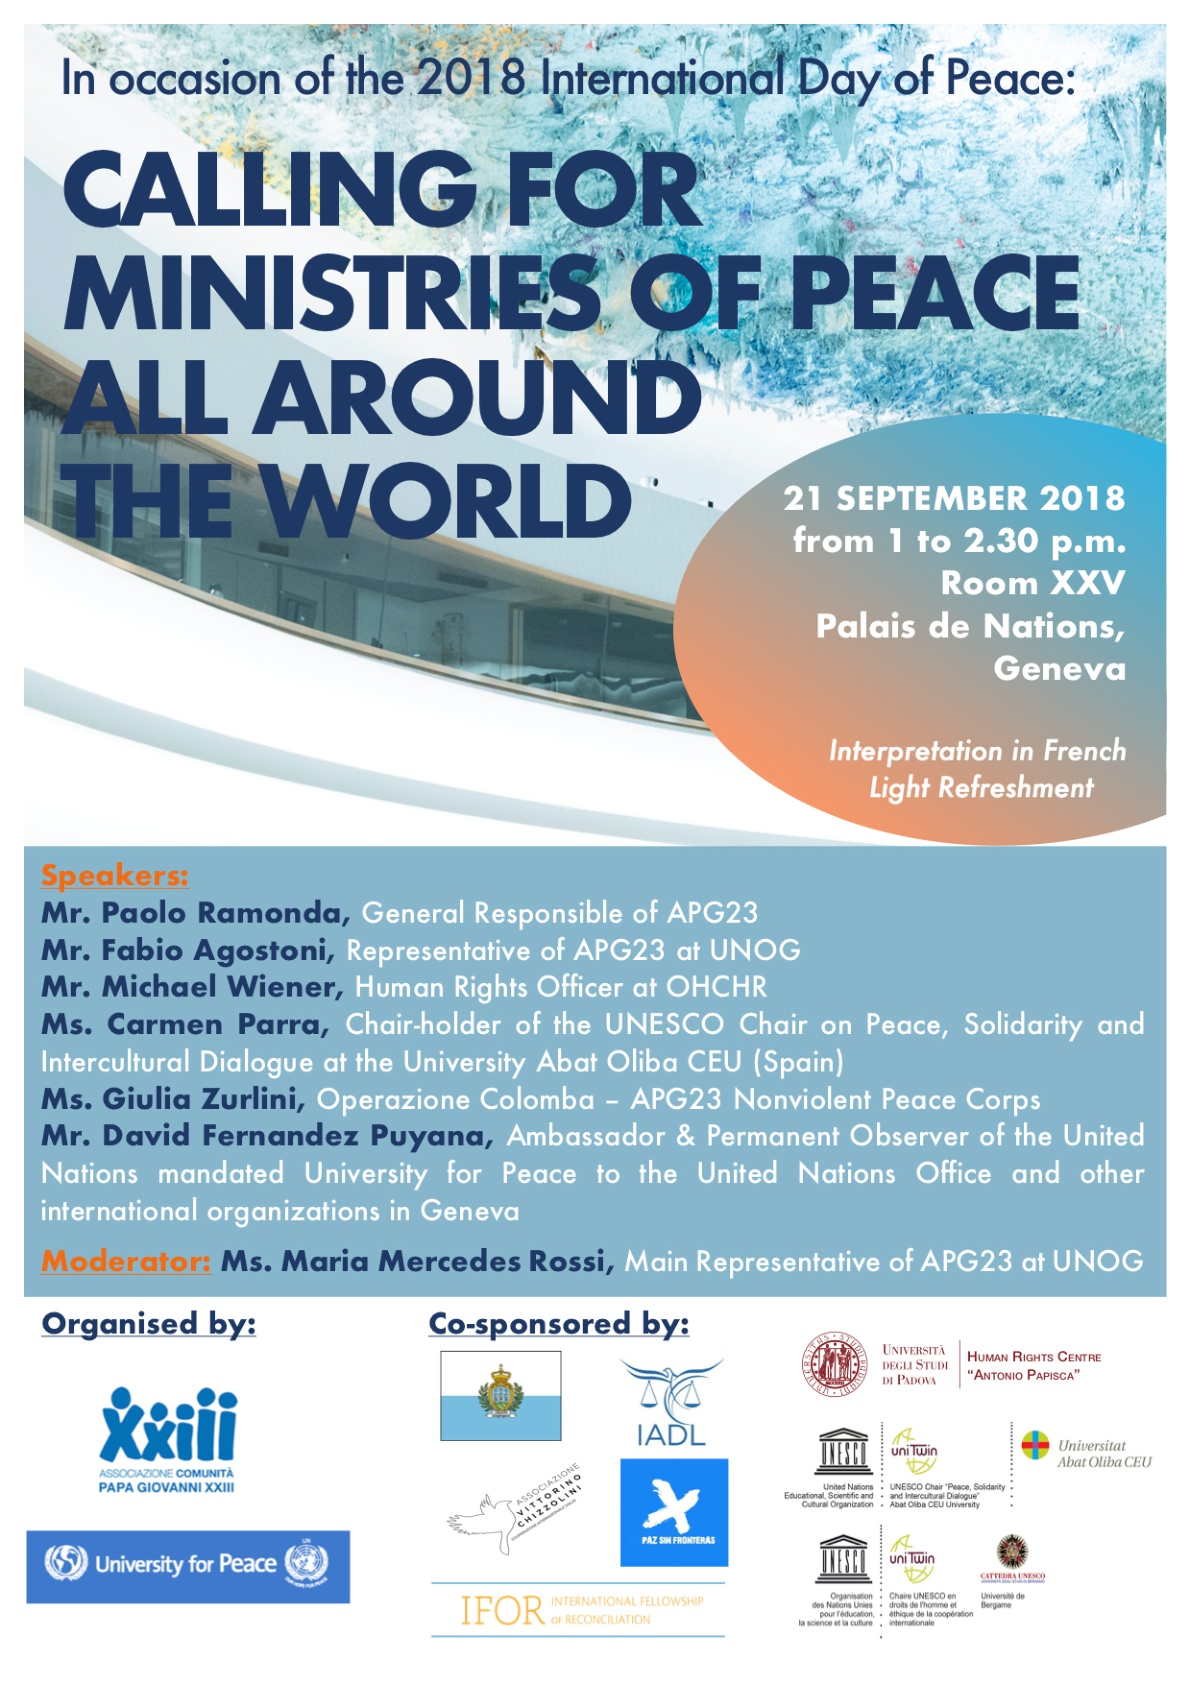 Ministero della Pace, Calling for ministries of peace all around the world, Associazione Papa Giovani XXIII